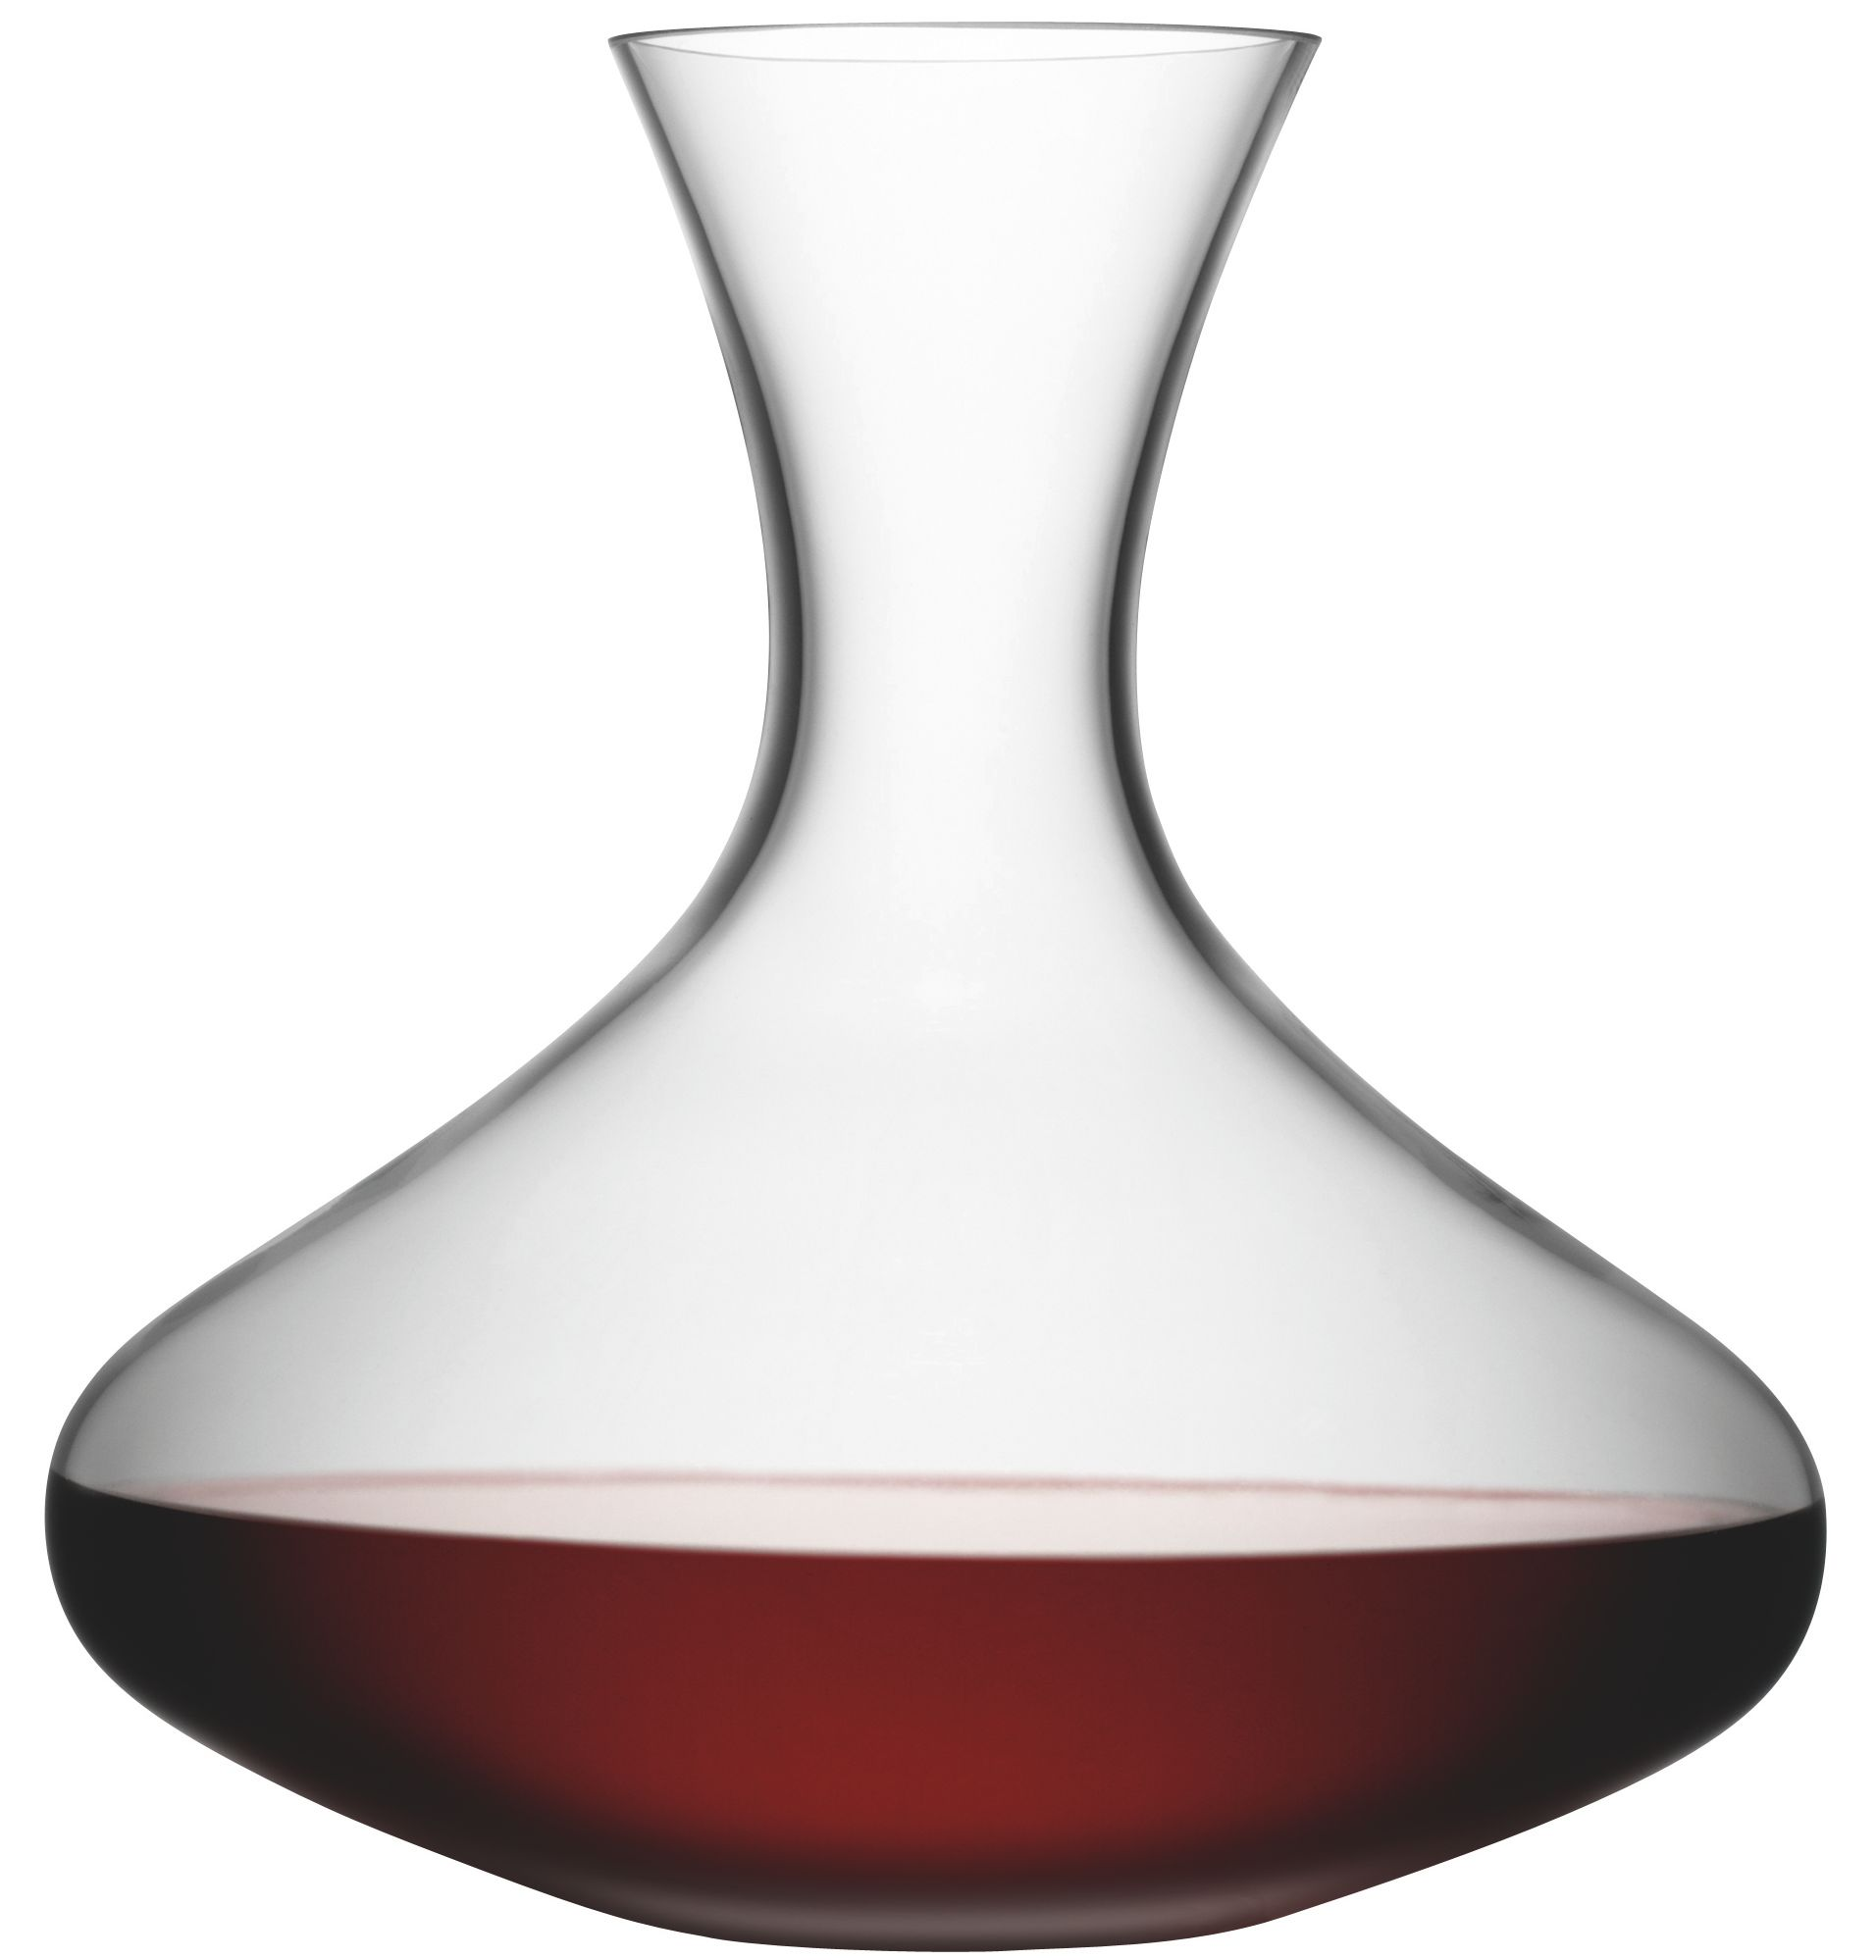 Wine Collection medium wine carafe 2.4 L